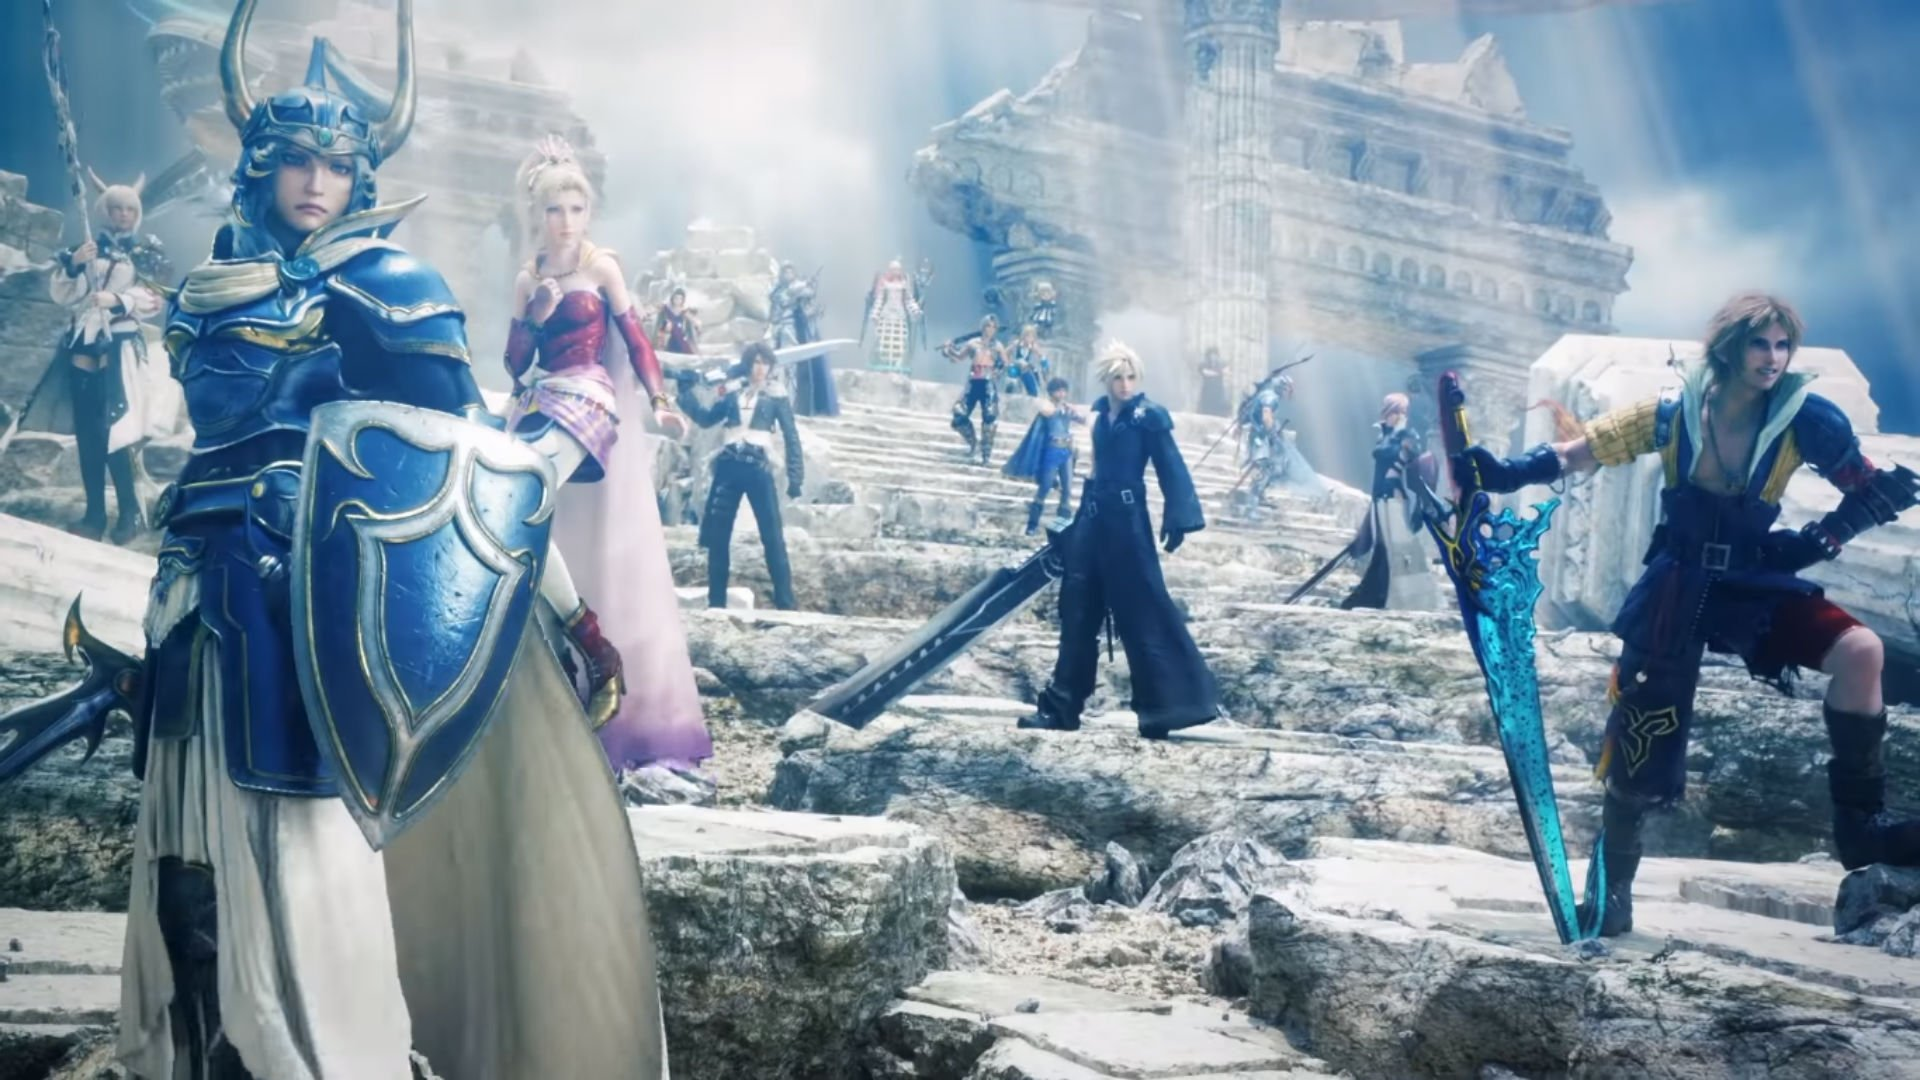 Check out Dissidia Final Fantasy NT's opening cutscene screenshot